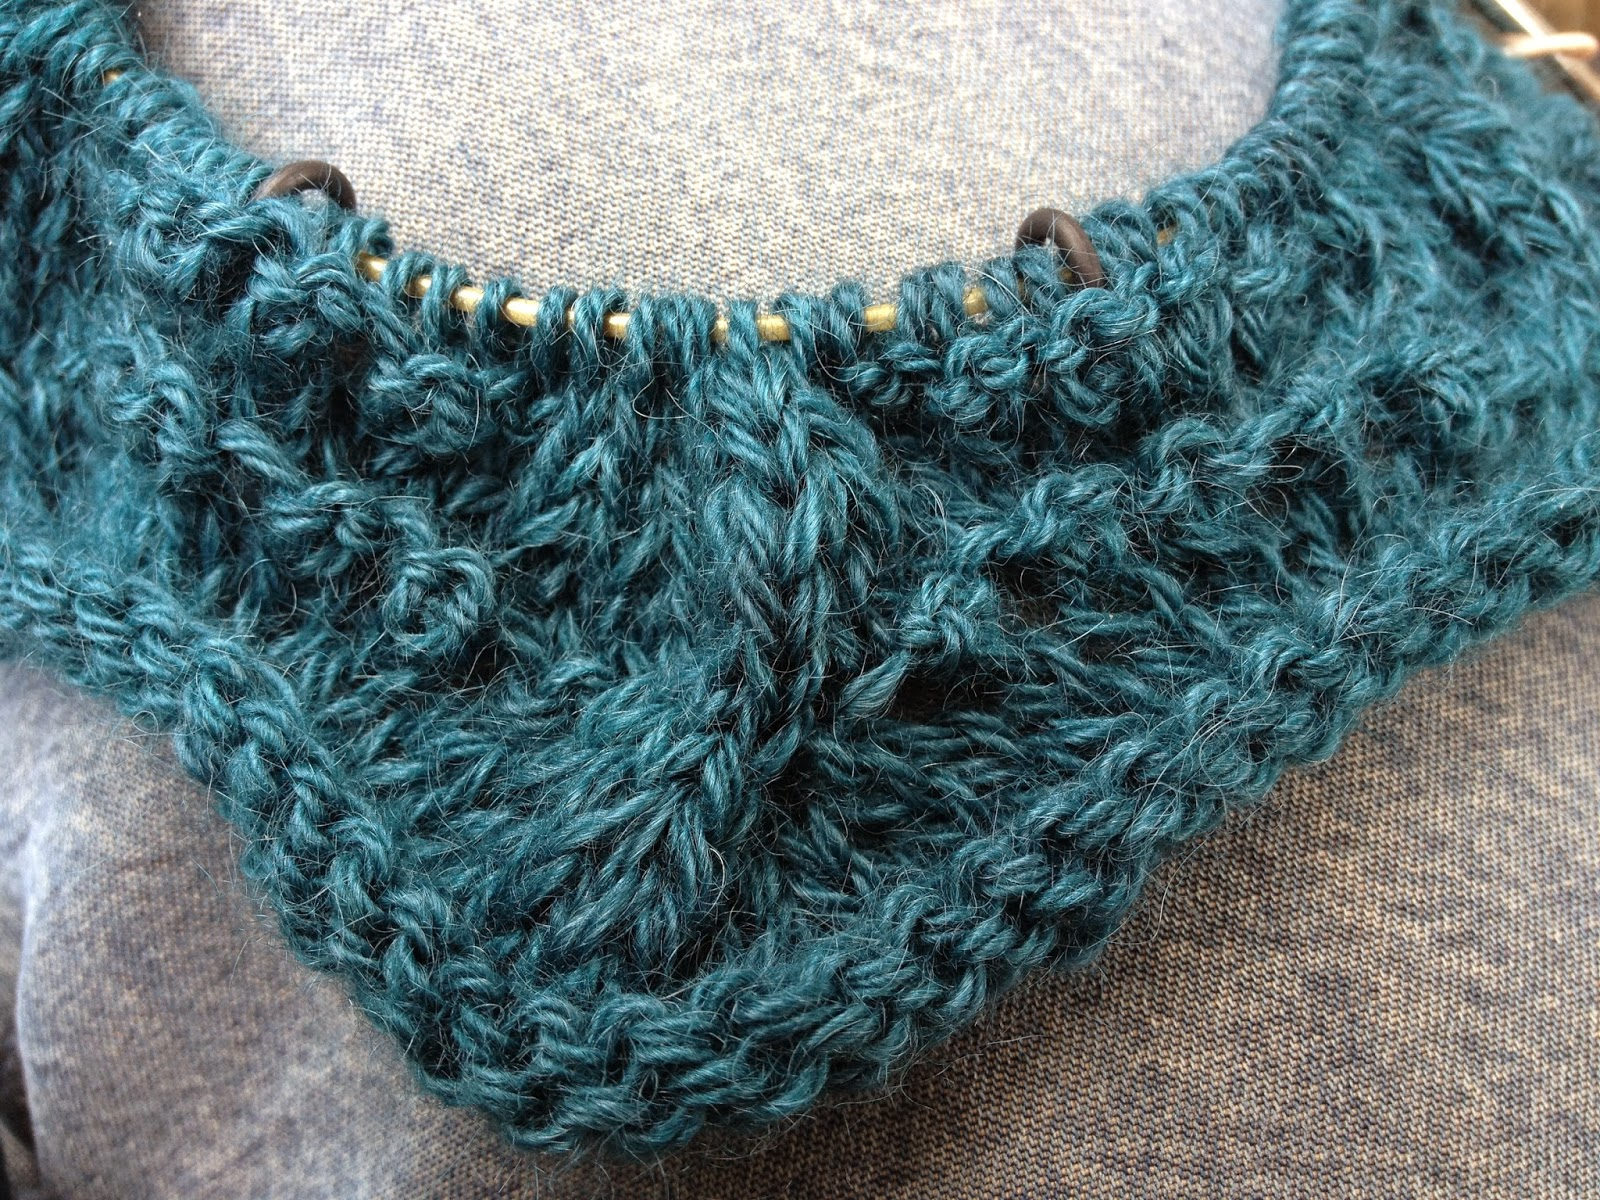 Cabled Feather Cowl from The Studio - Day 2 6